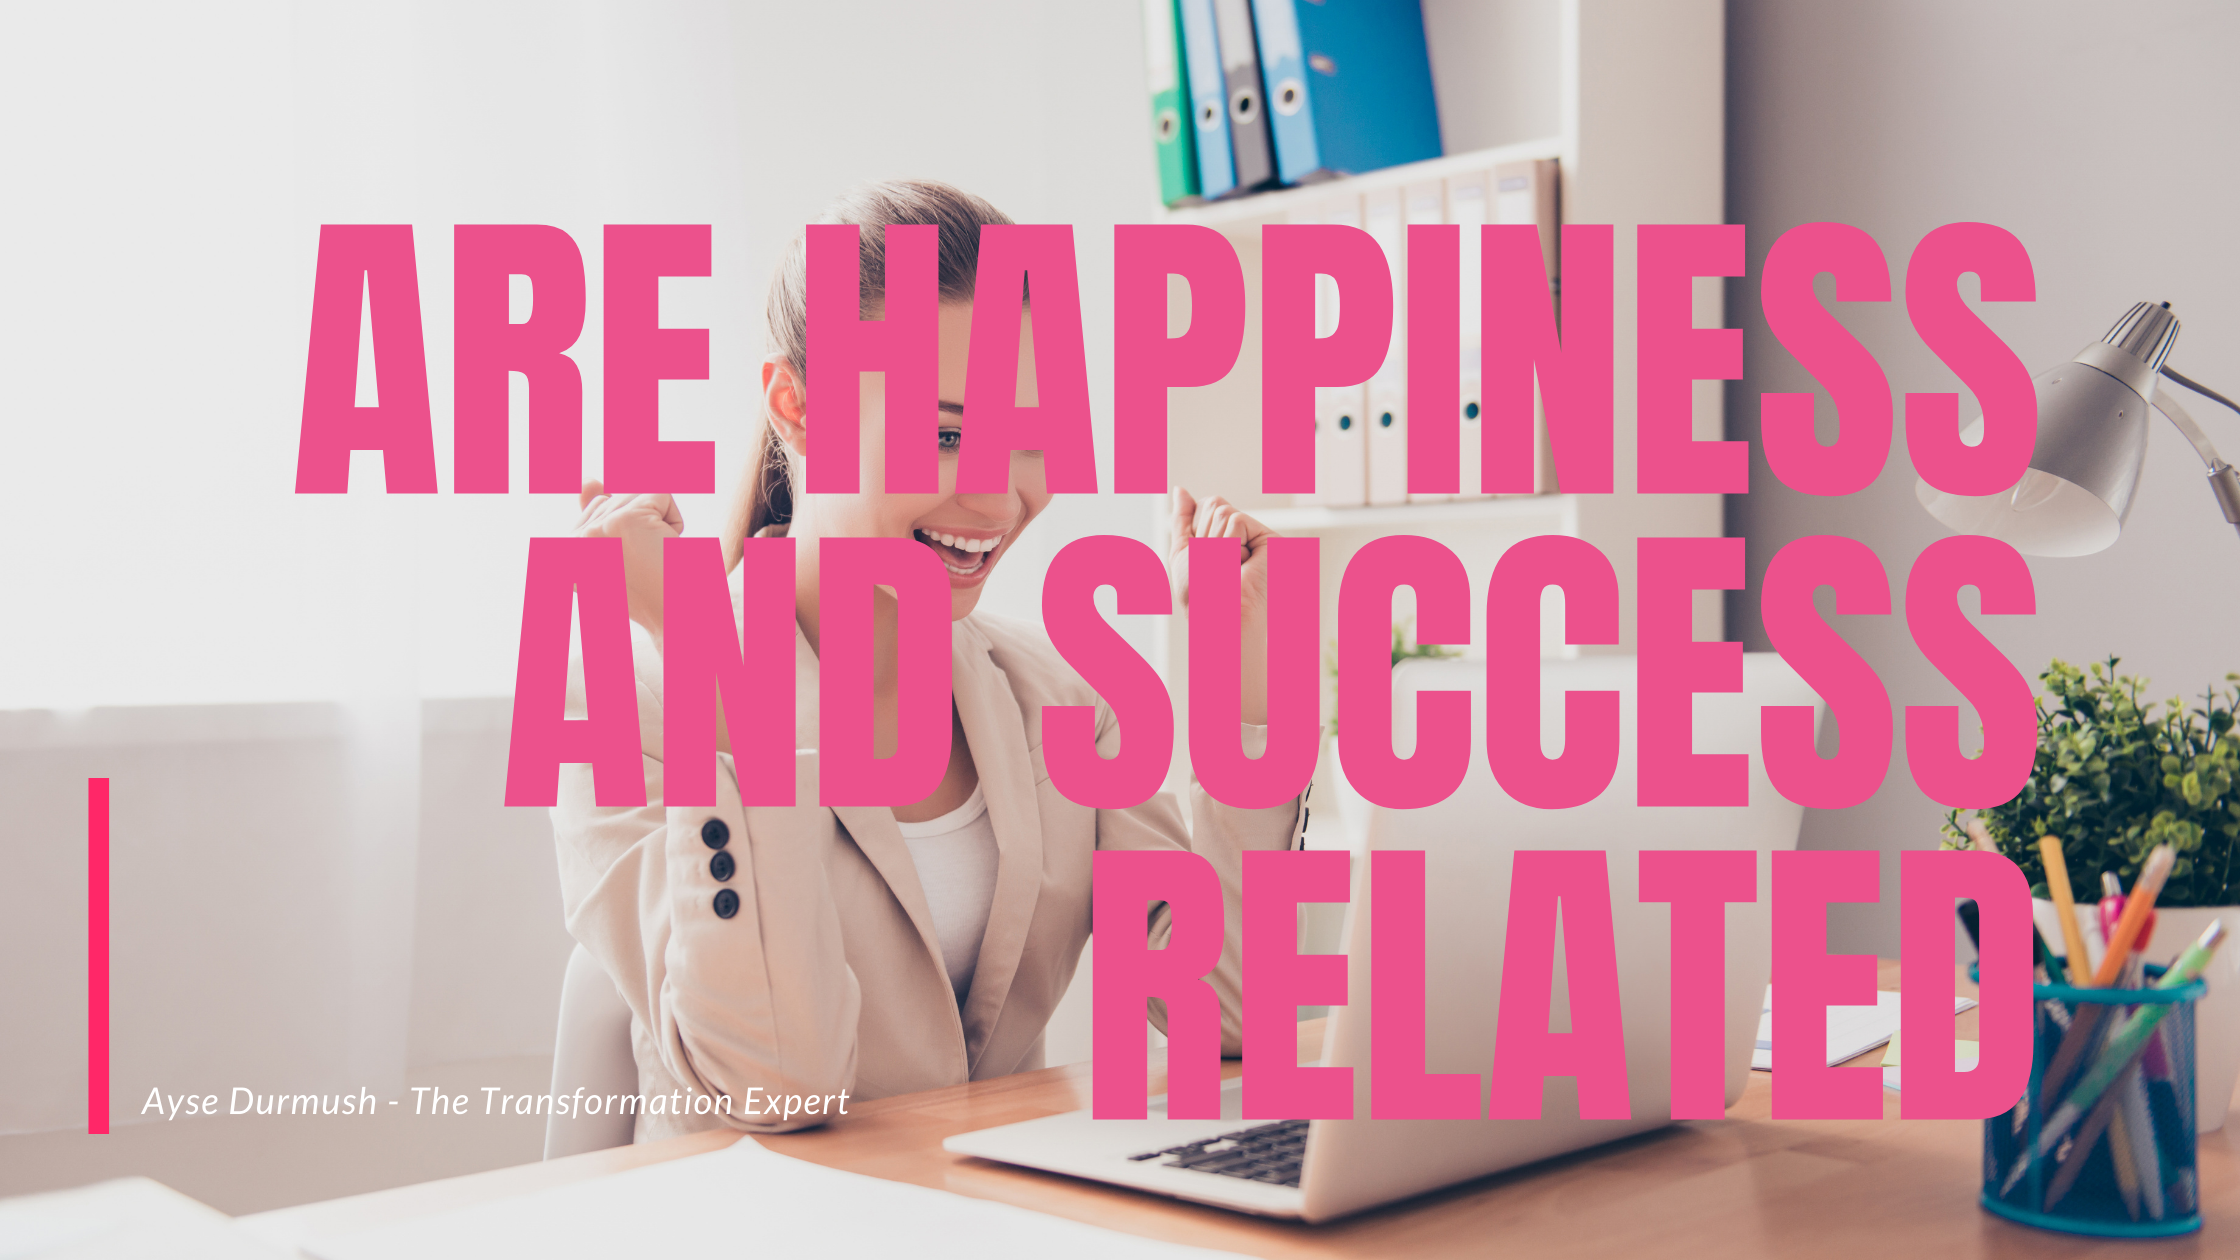 Are Happiness & Success Related